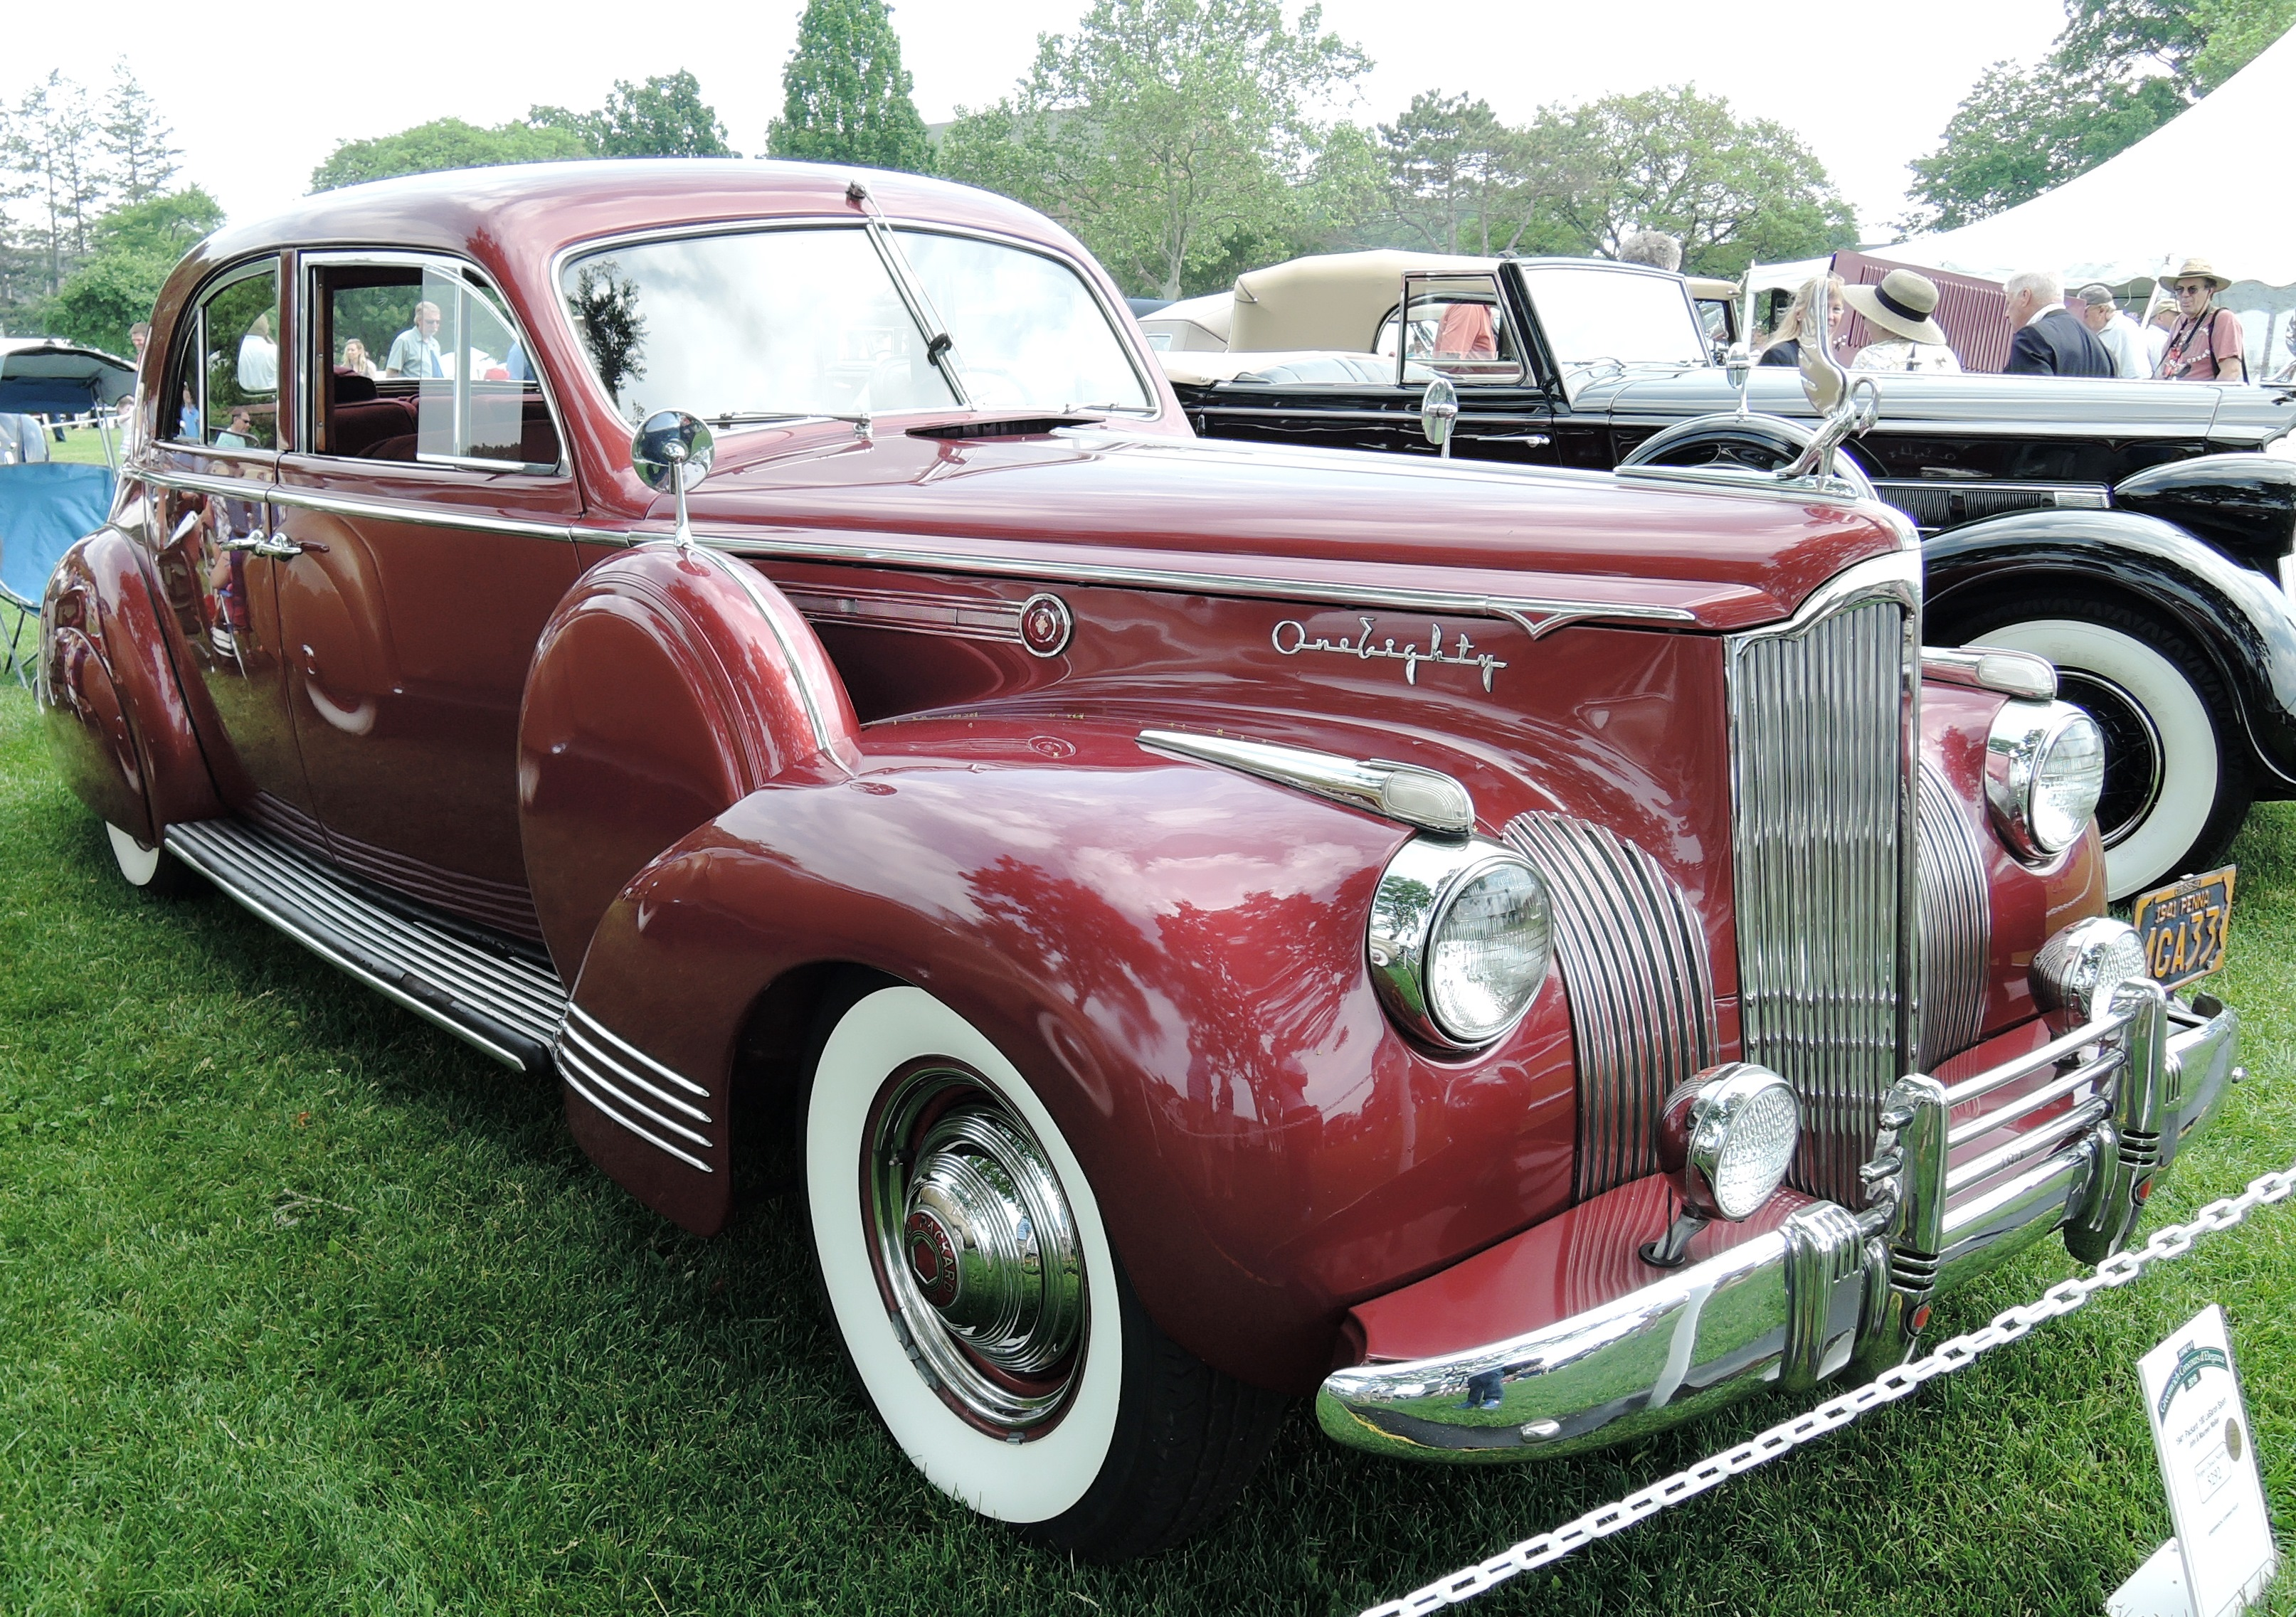 red 1941 Packard 180 LeBaron Sport - greenwich concours